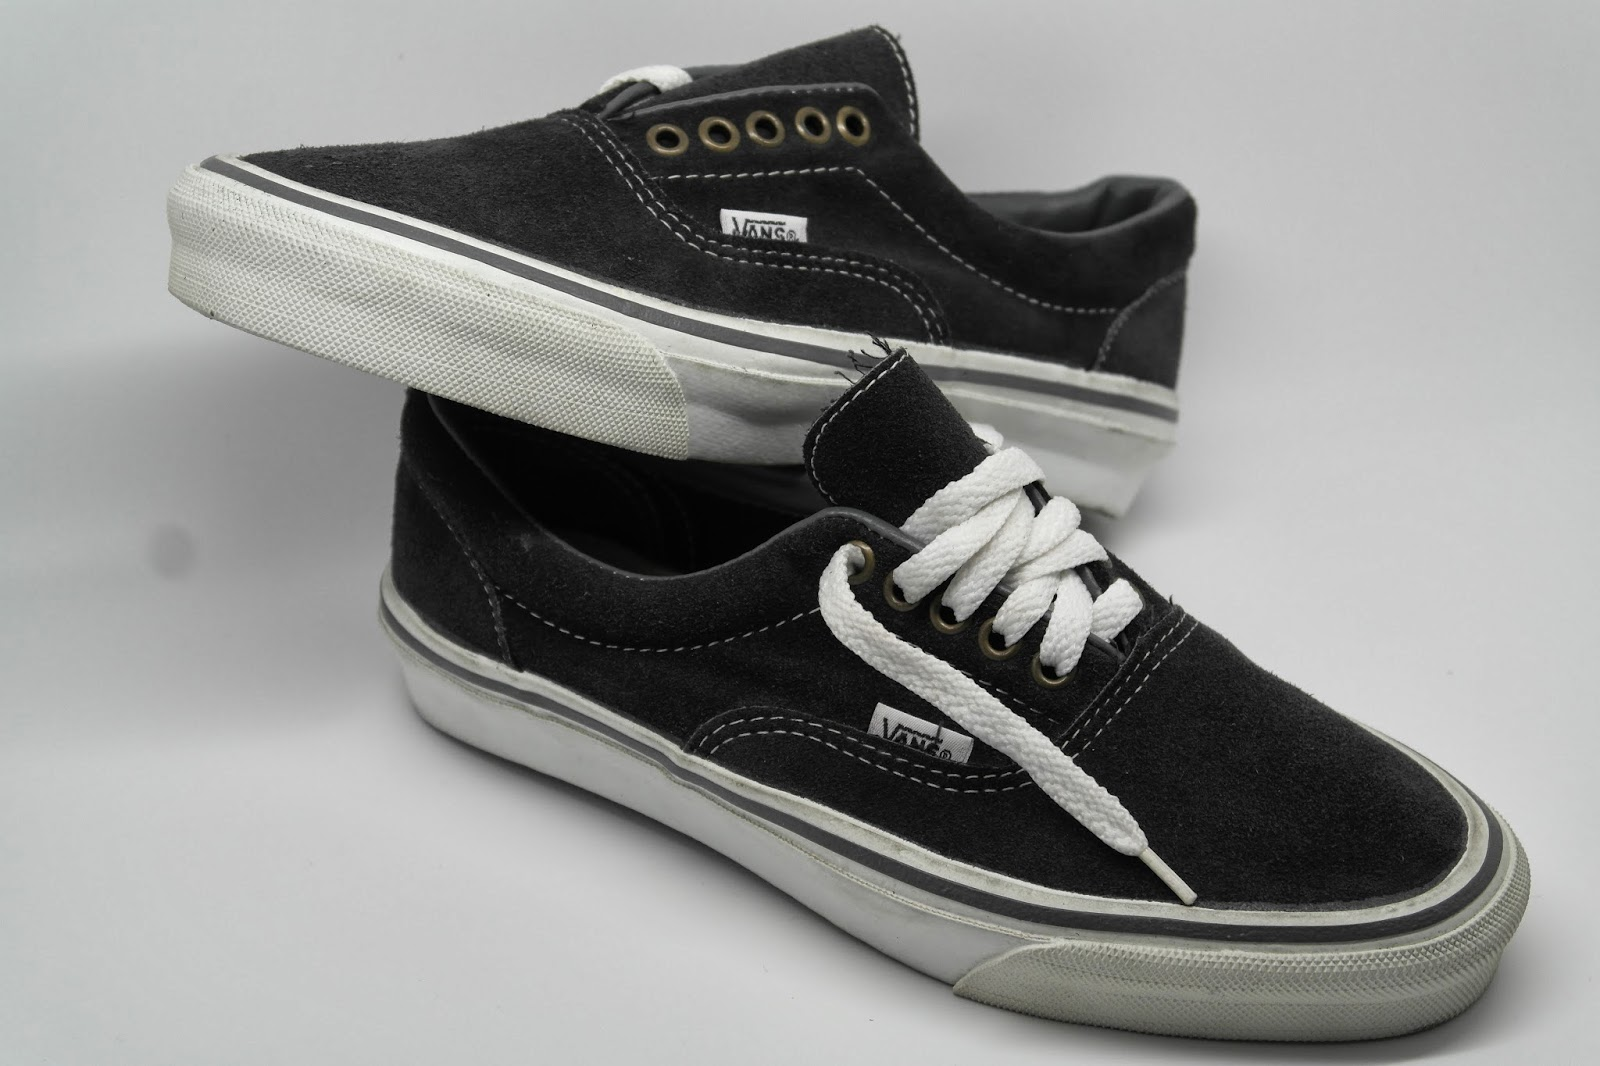 Where Do You Buy Vans Shoes